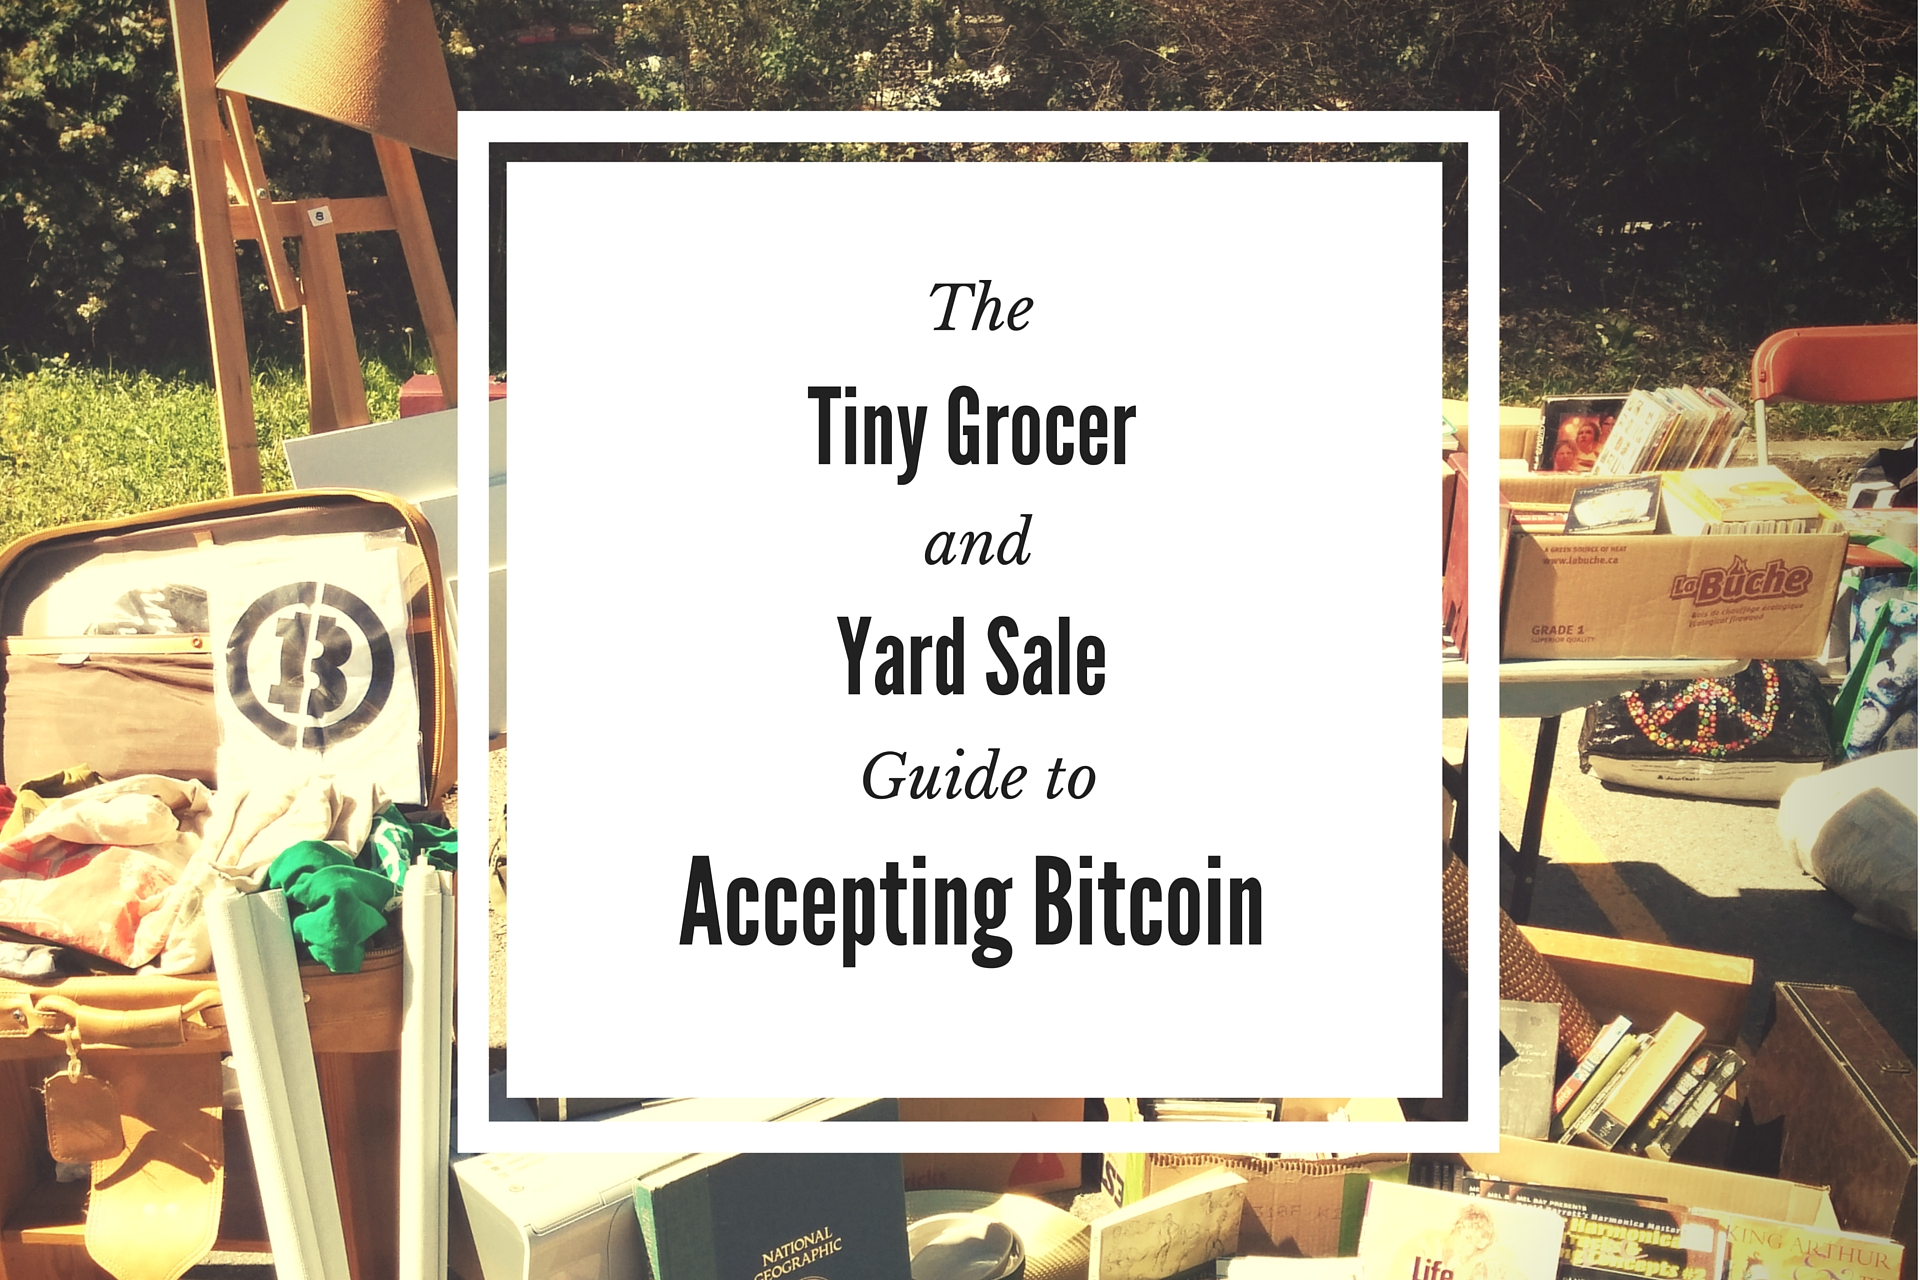 The Tiny Grocer and Yard Sale Guide to<br>Accepting Bitcoin